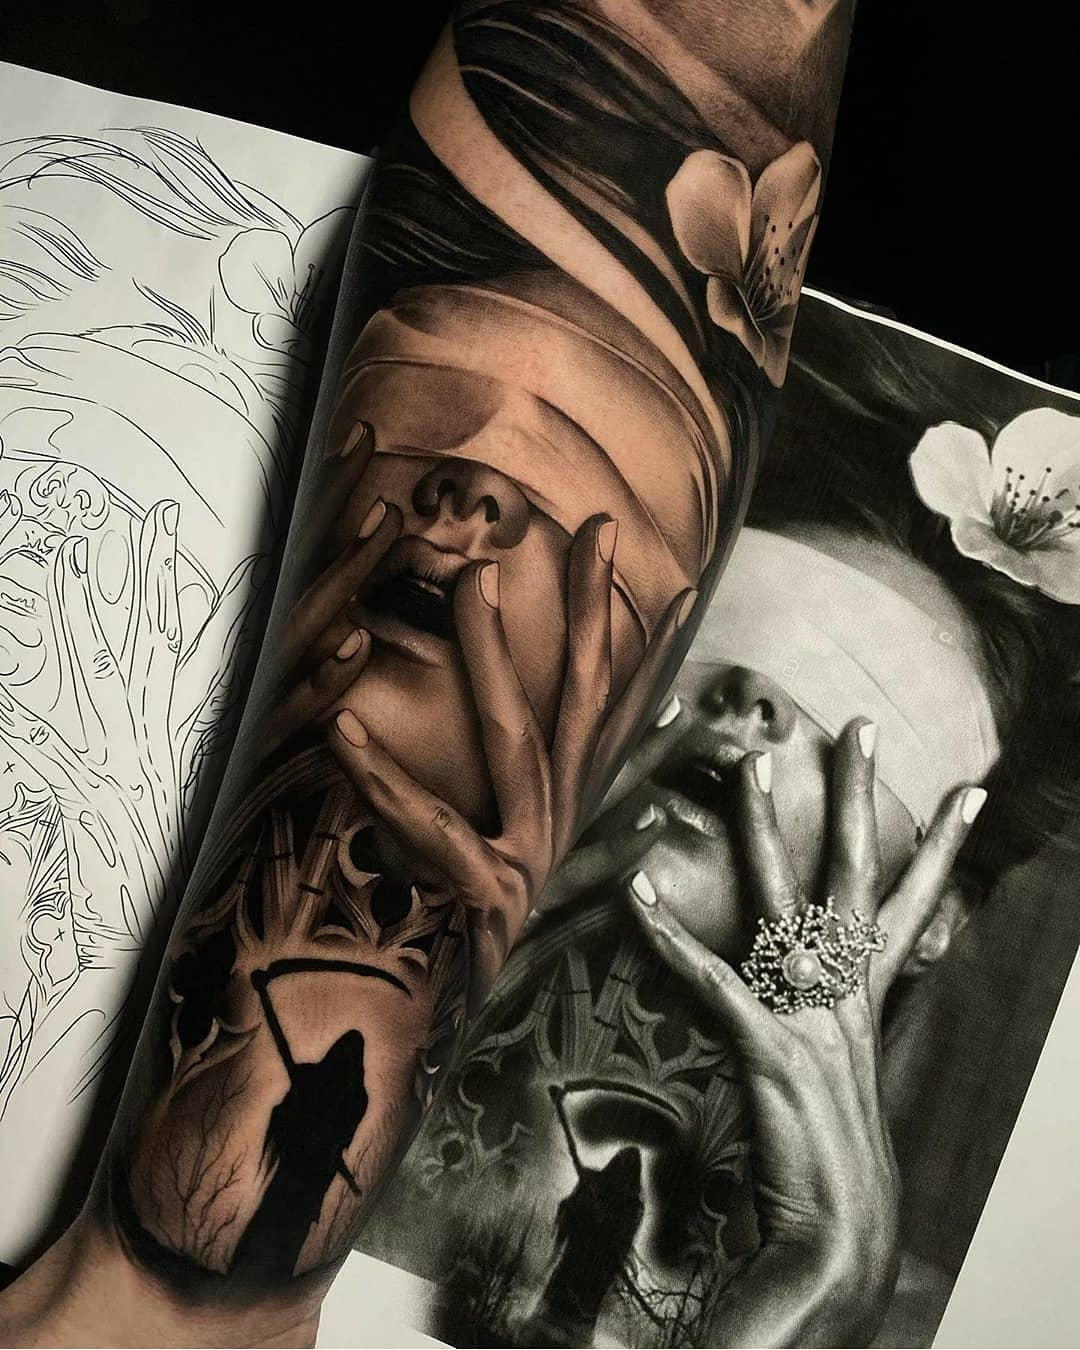 Beautiful tattoo of a girl on a sketch background - realism style